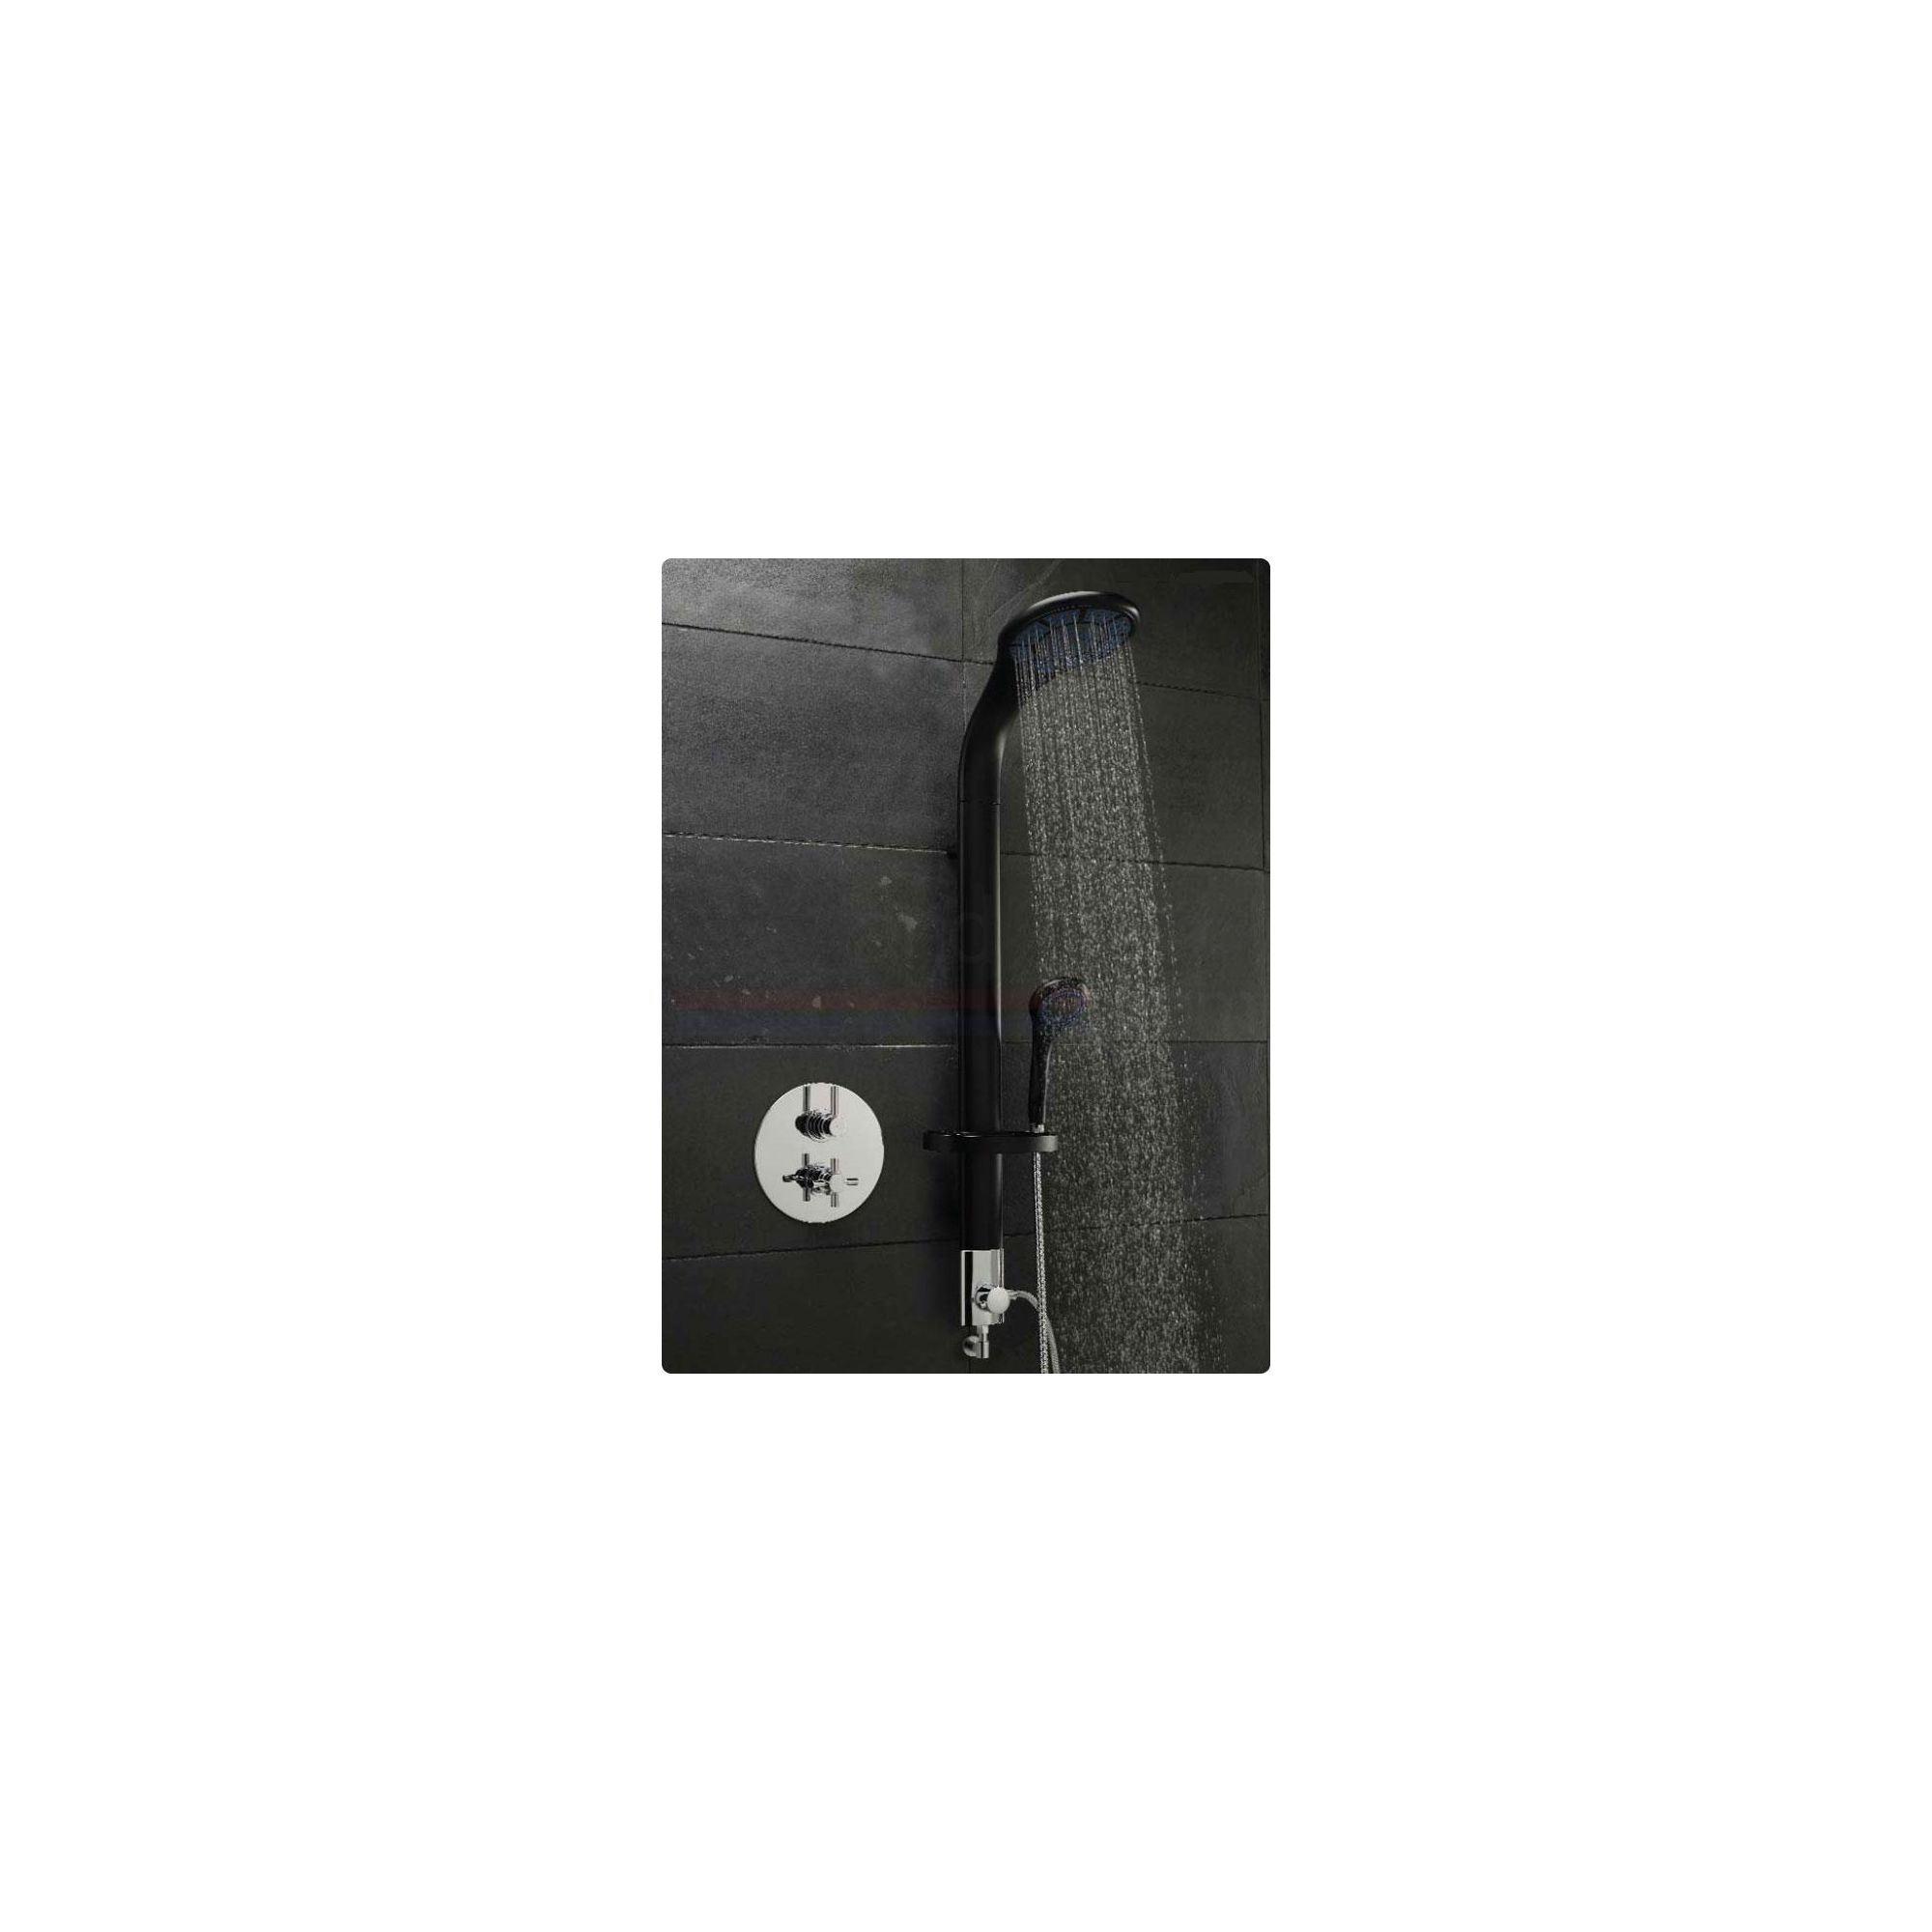 Hudson Reed Tec Twin Complete Thermostatic Mixer Shower at Tesco Direct